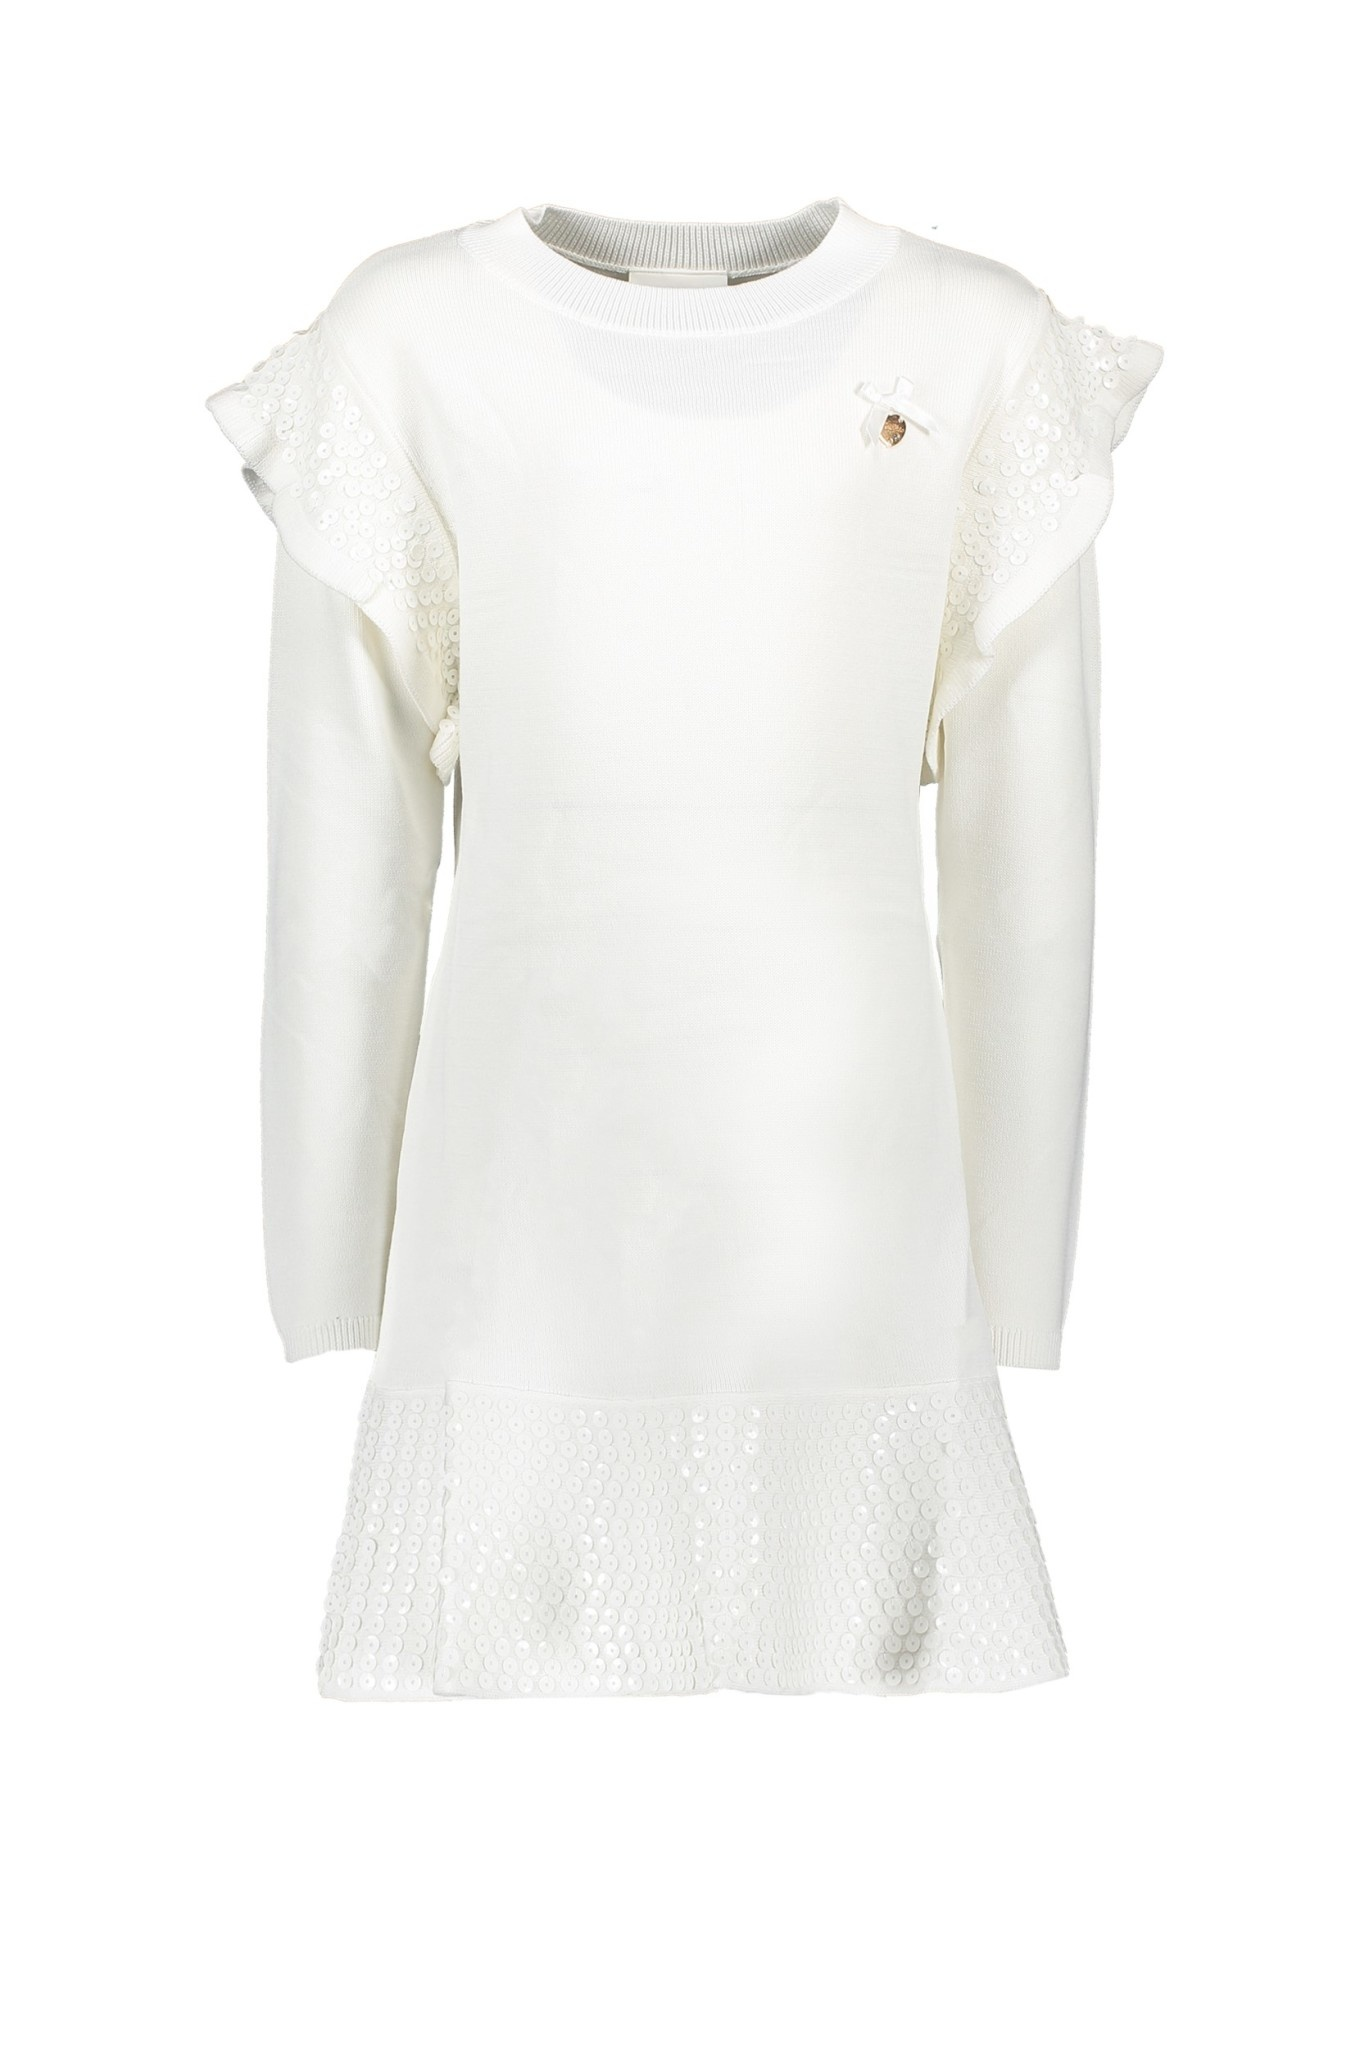 Lechic Le Chic Off White Dress with Sequins